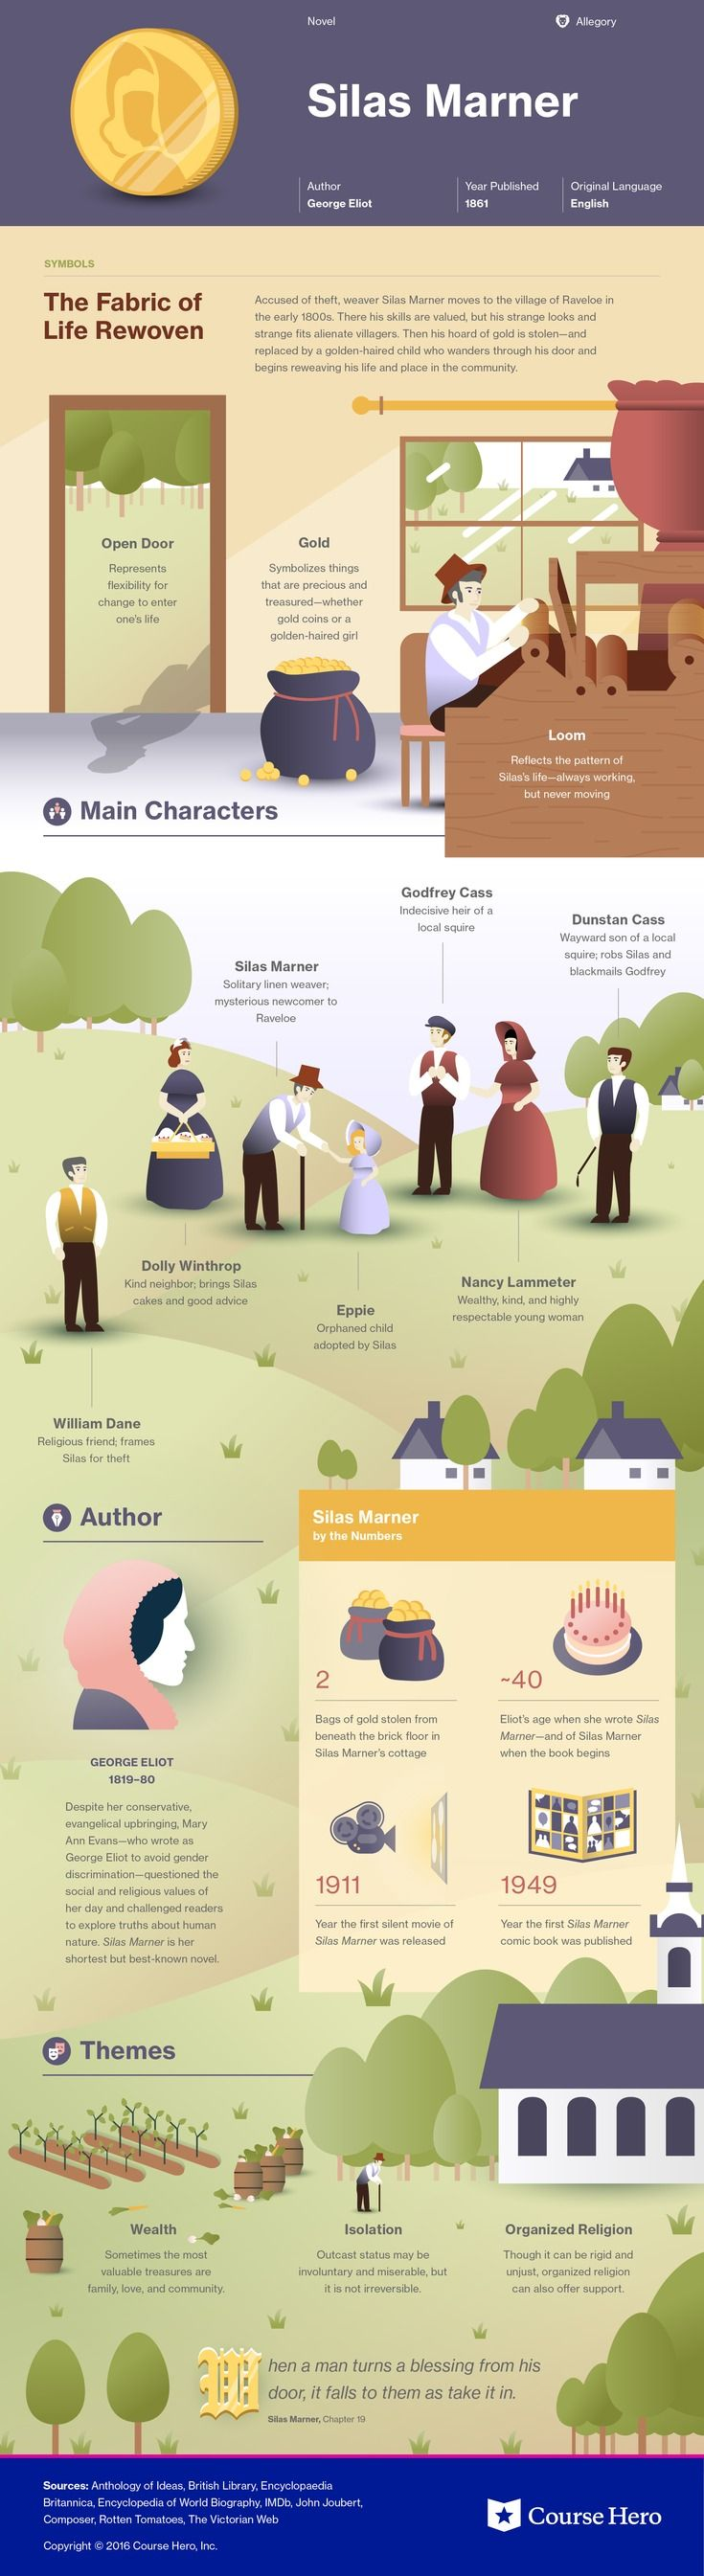 This @CourseHero infographic on Silas Marner is both visually stunning and informative!